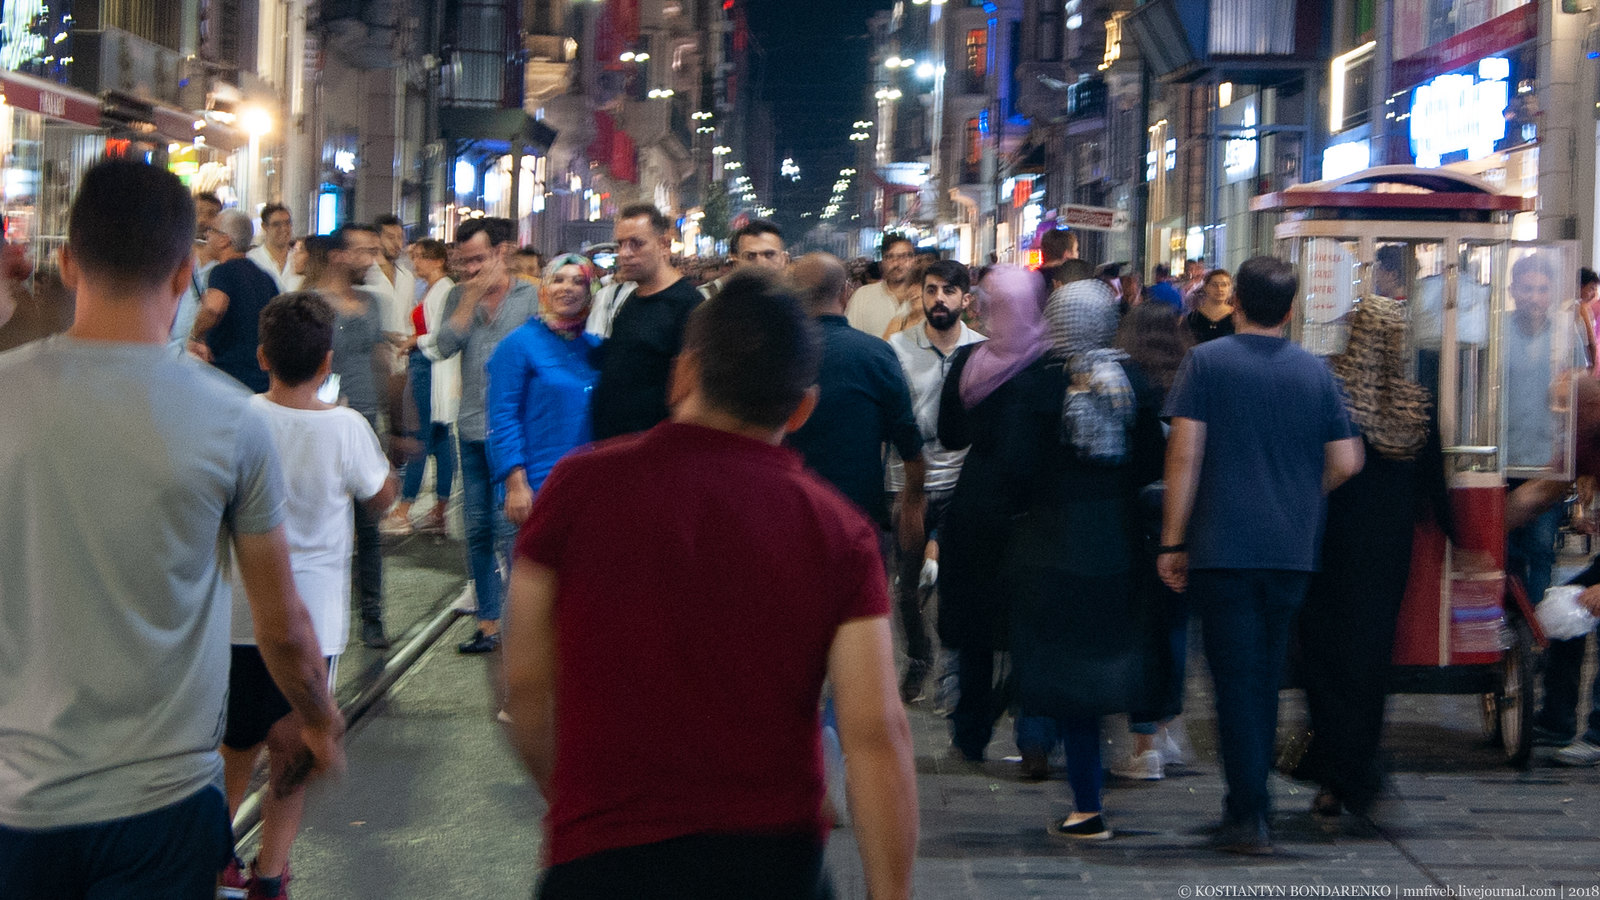 20180825 - Istanbul_Istiklal-11